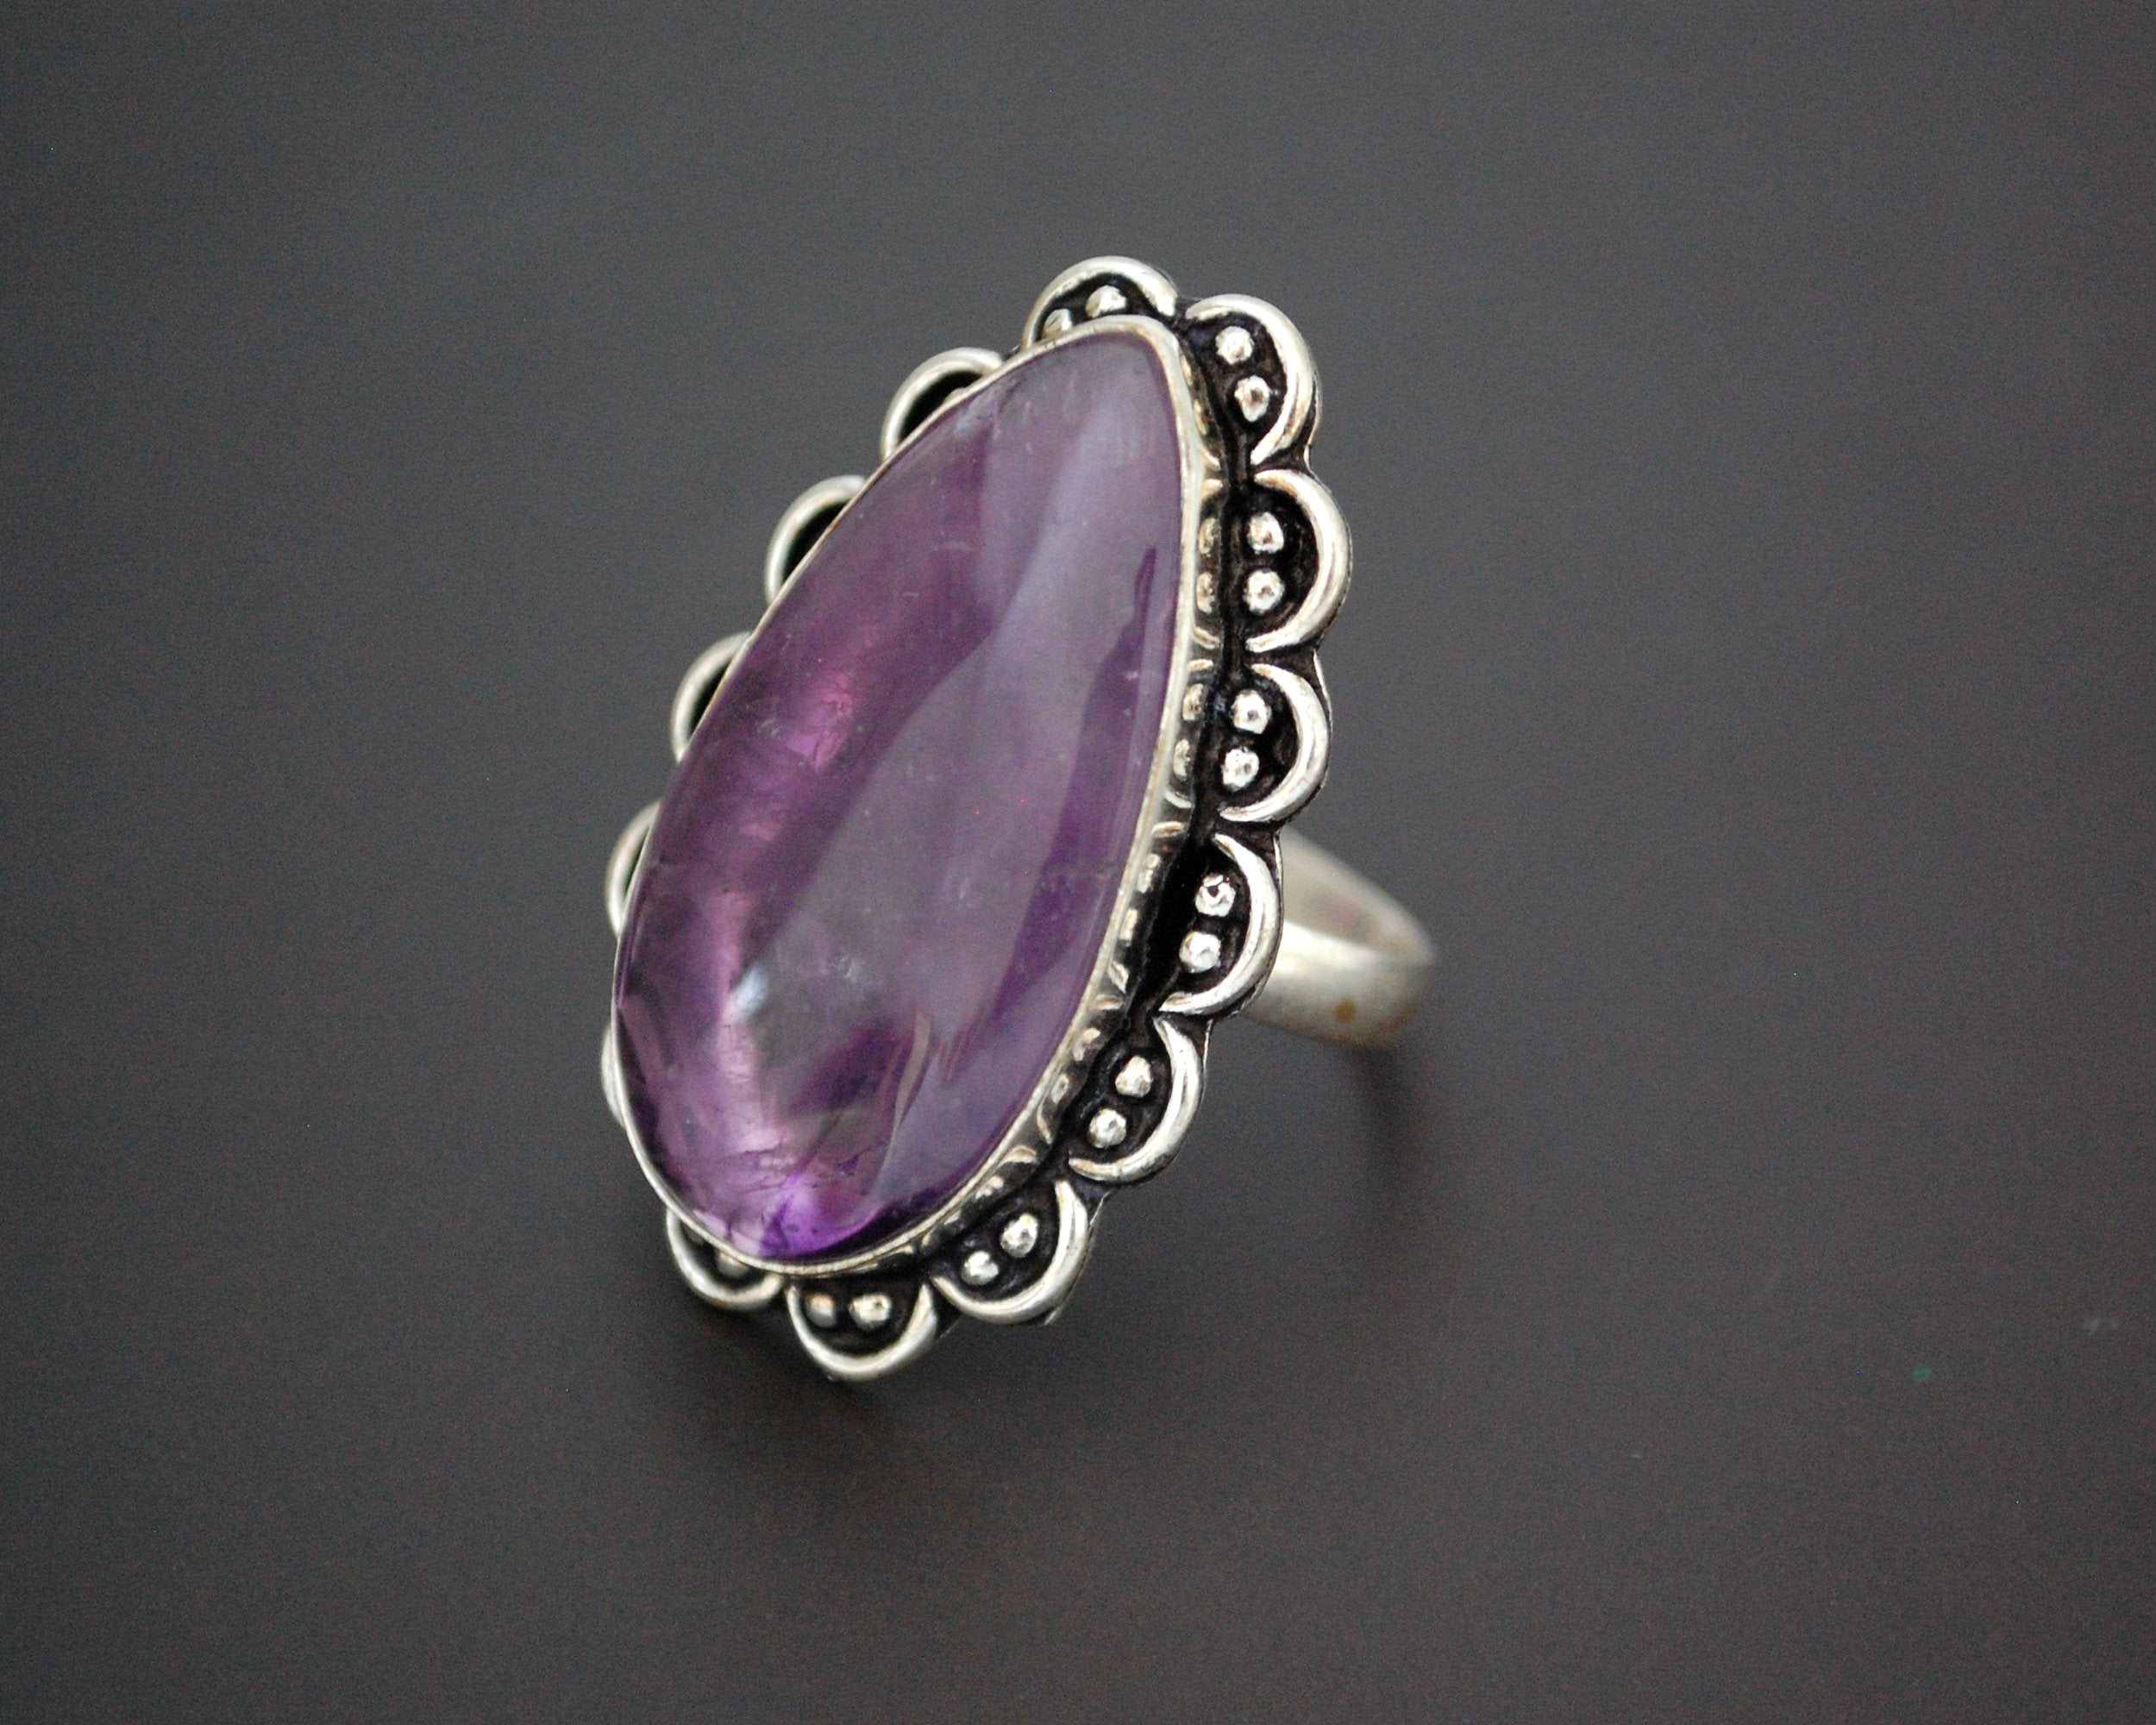 Amethyst Ring from India - Size 9.25